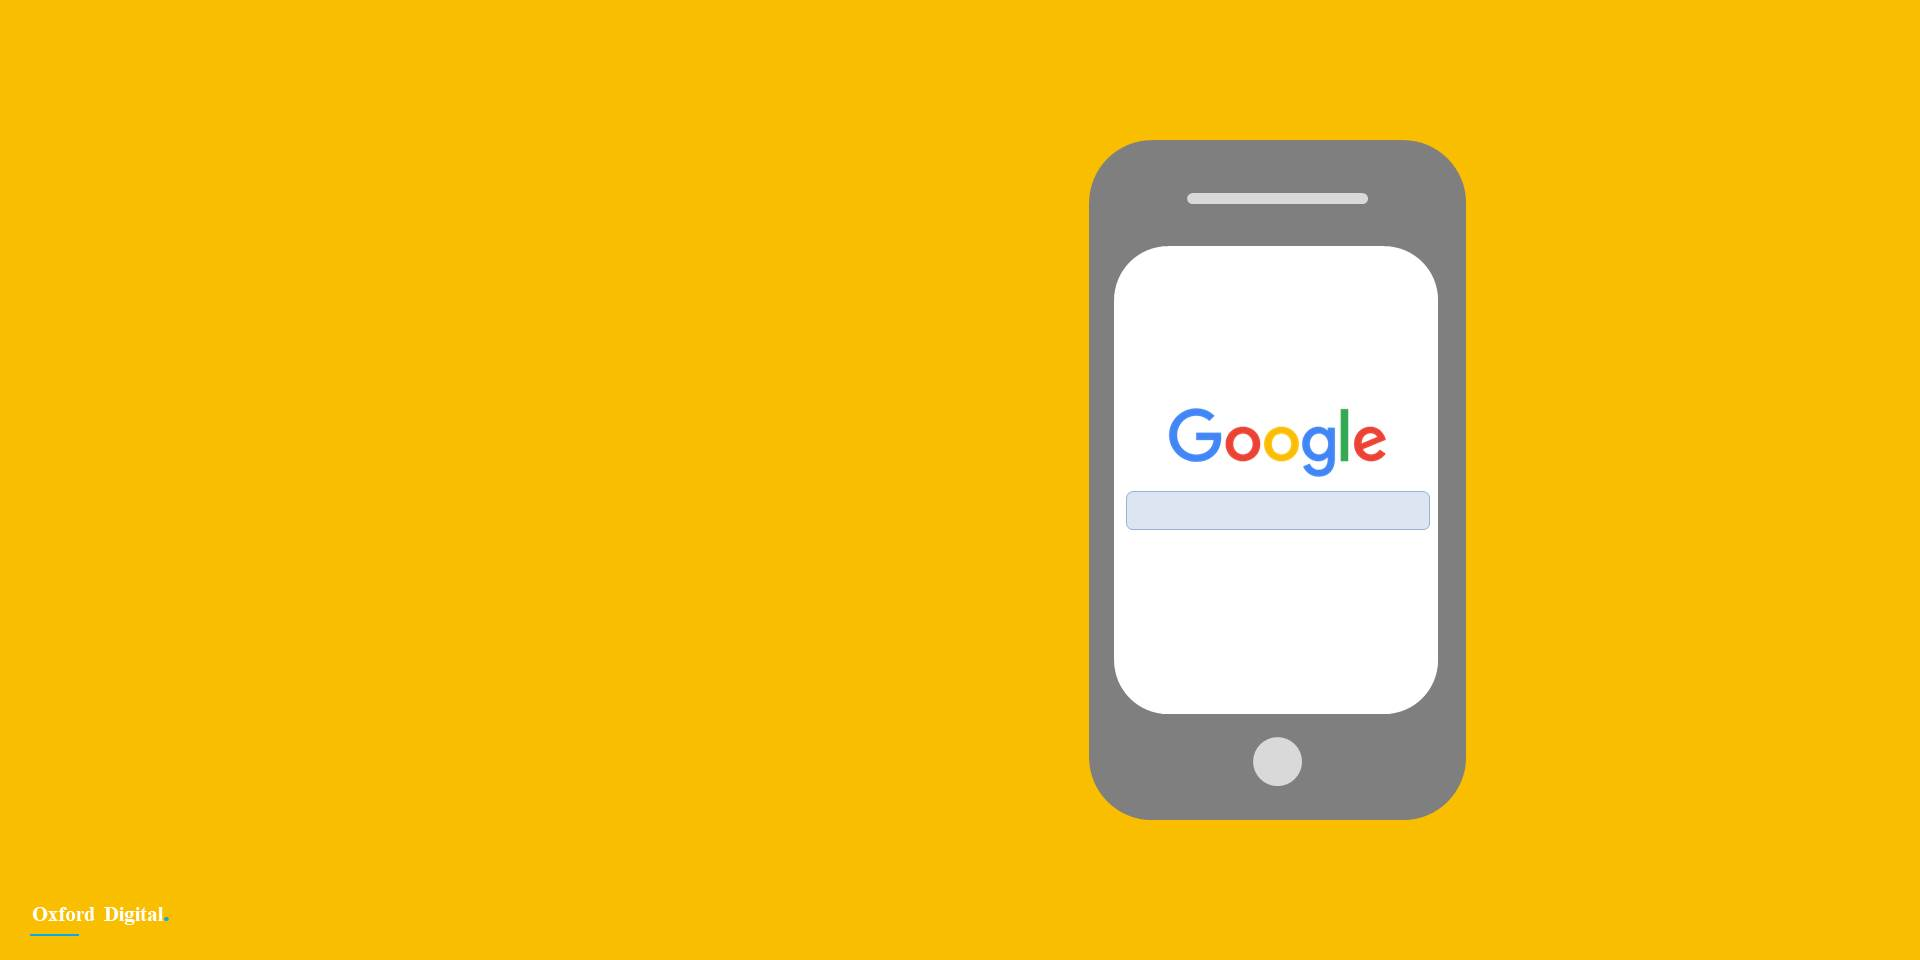 Google Search rolling out mobile-first indexing